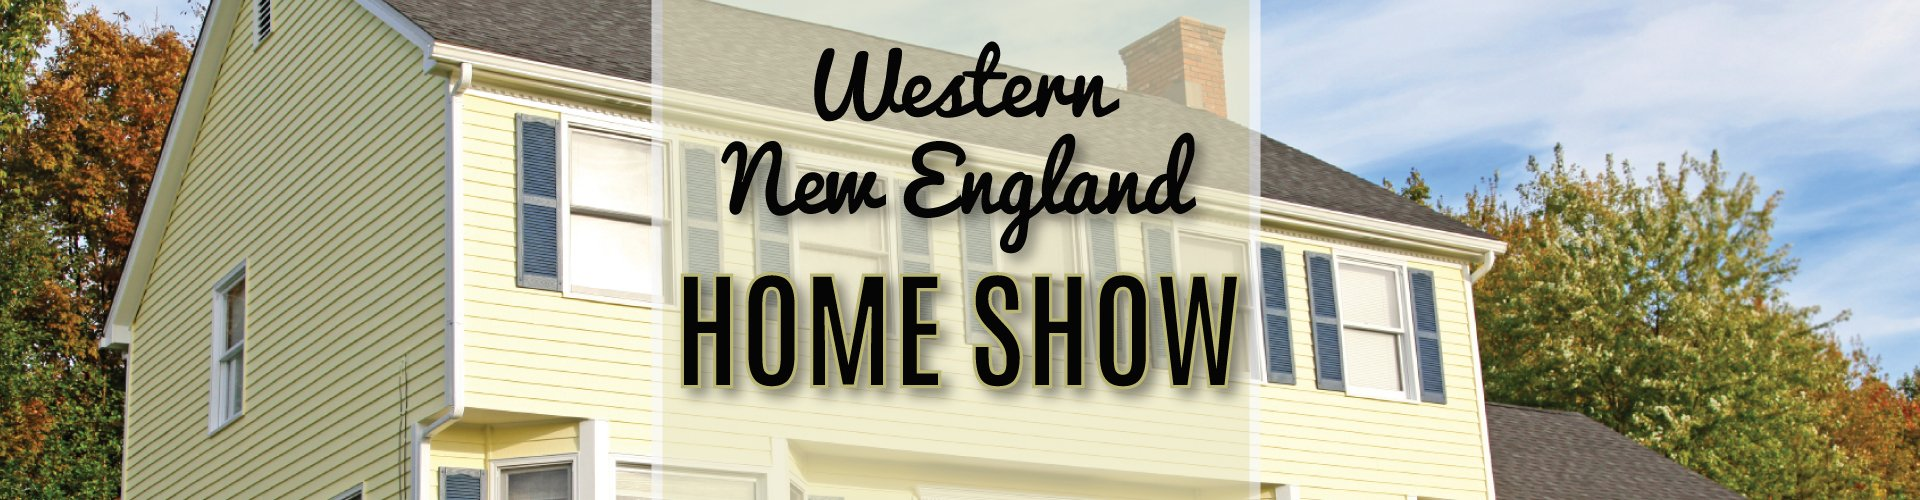 Phoenix Home And Garden Show 2020.2020 Western New England Home Show Danbury Ct Home Expo